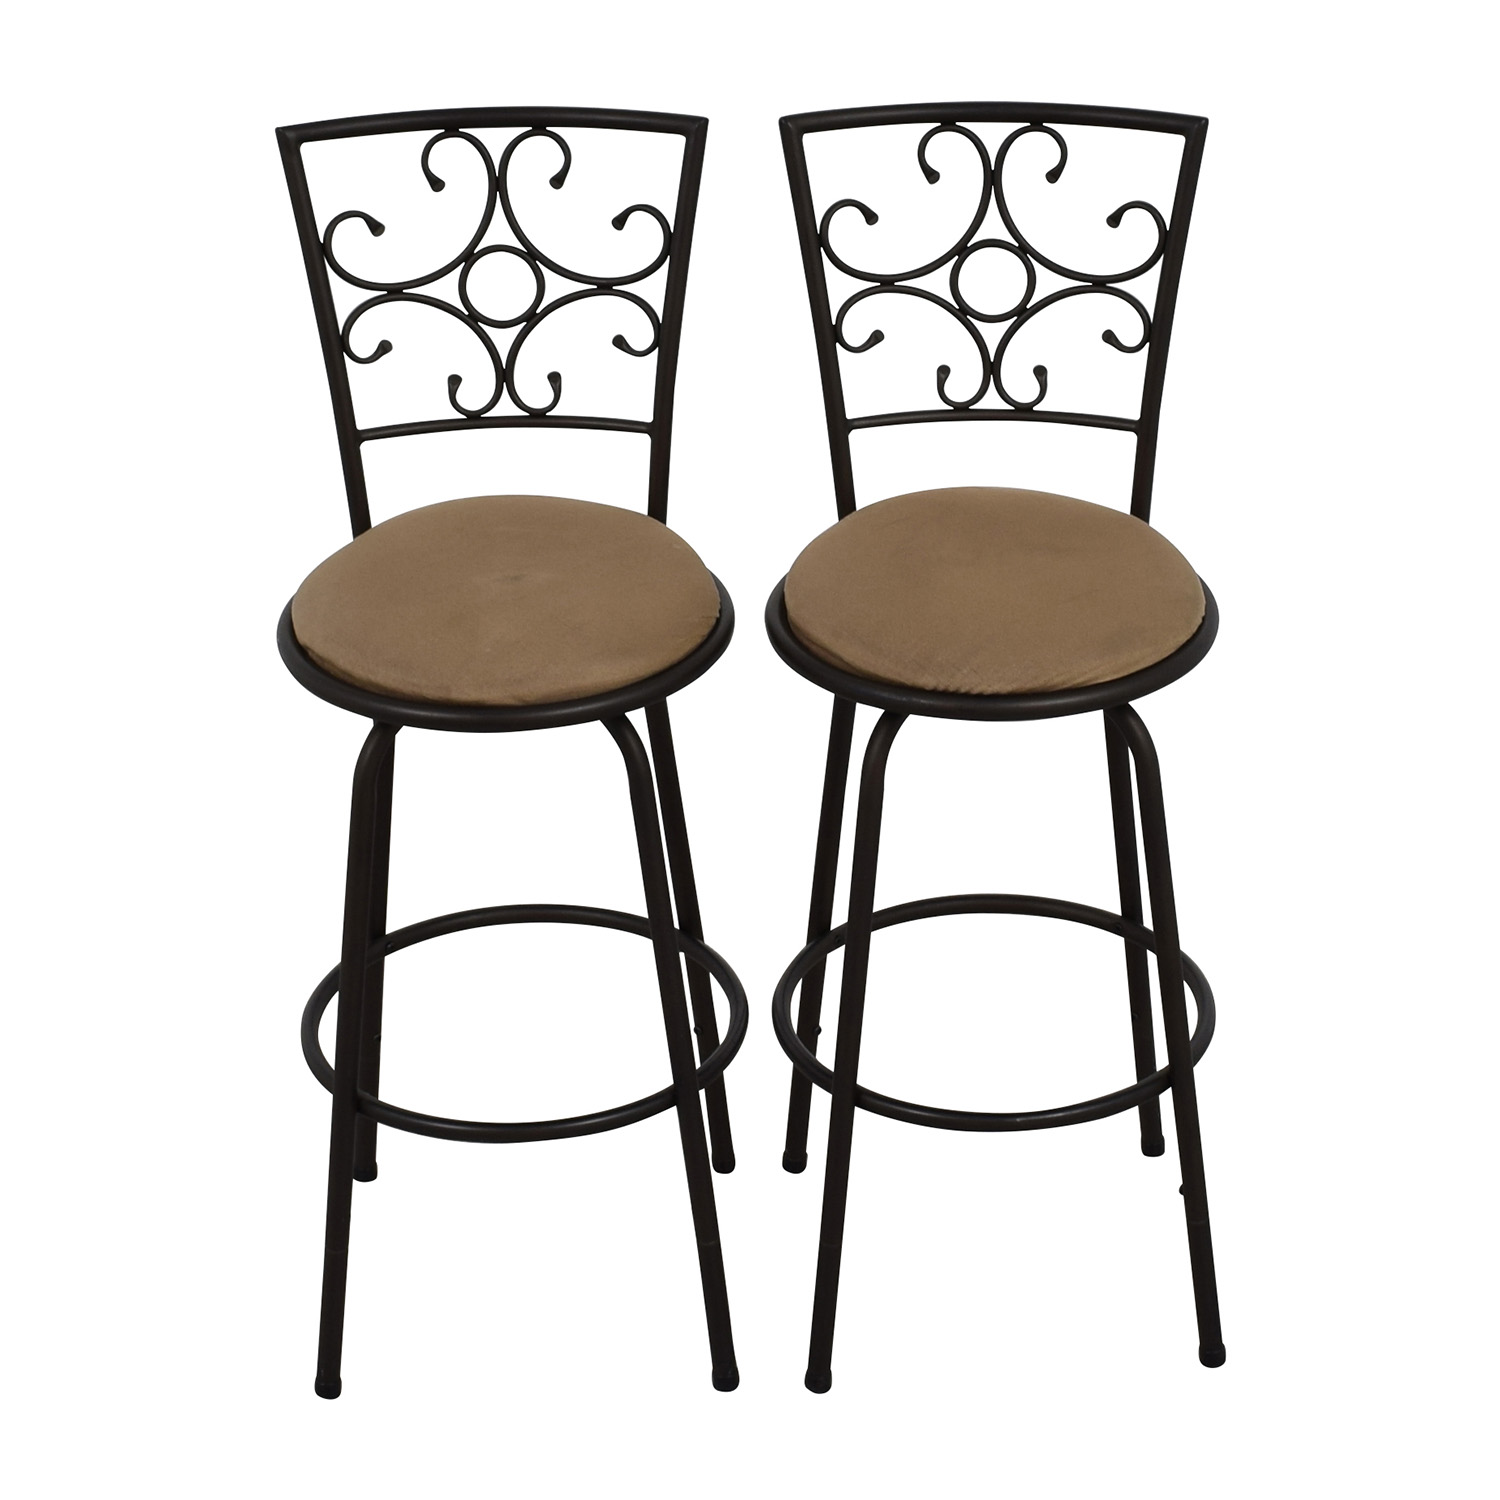 Pair of Black Iron Plush Bar Stools for sale